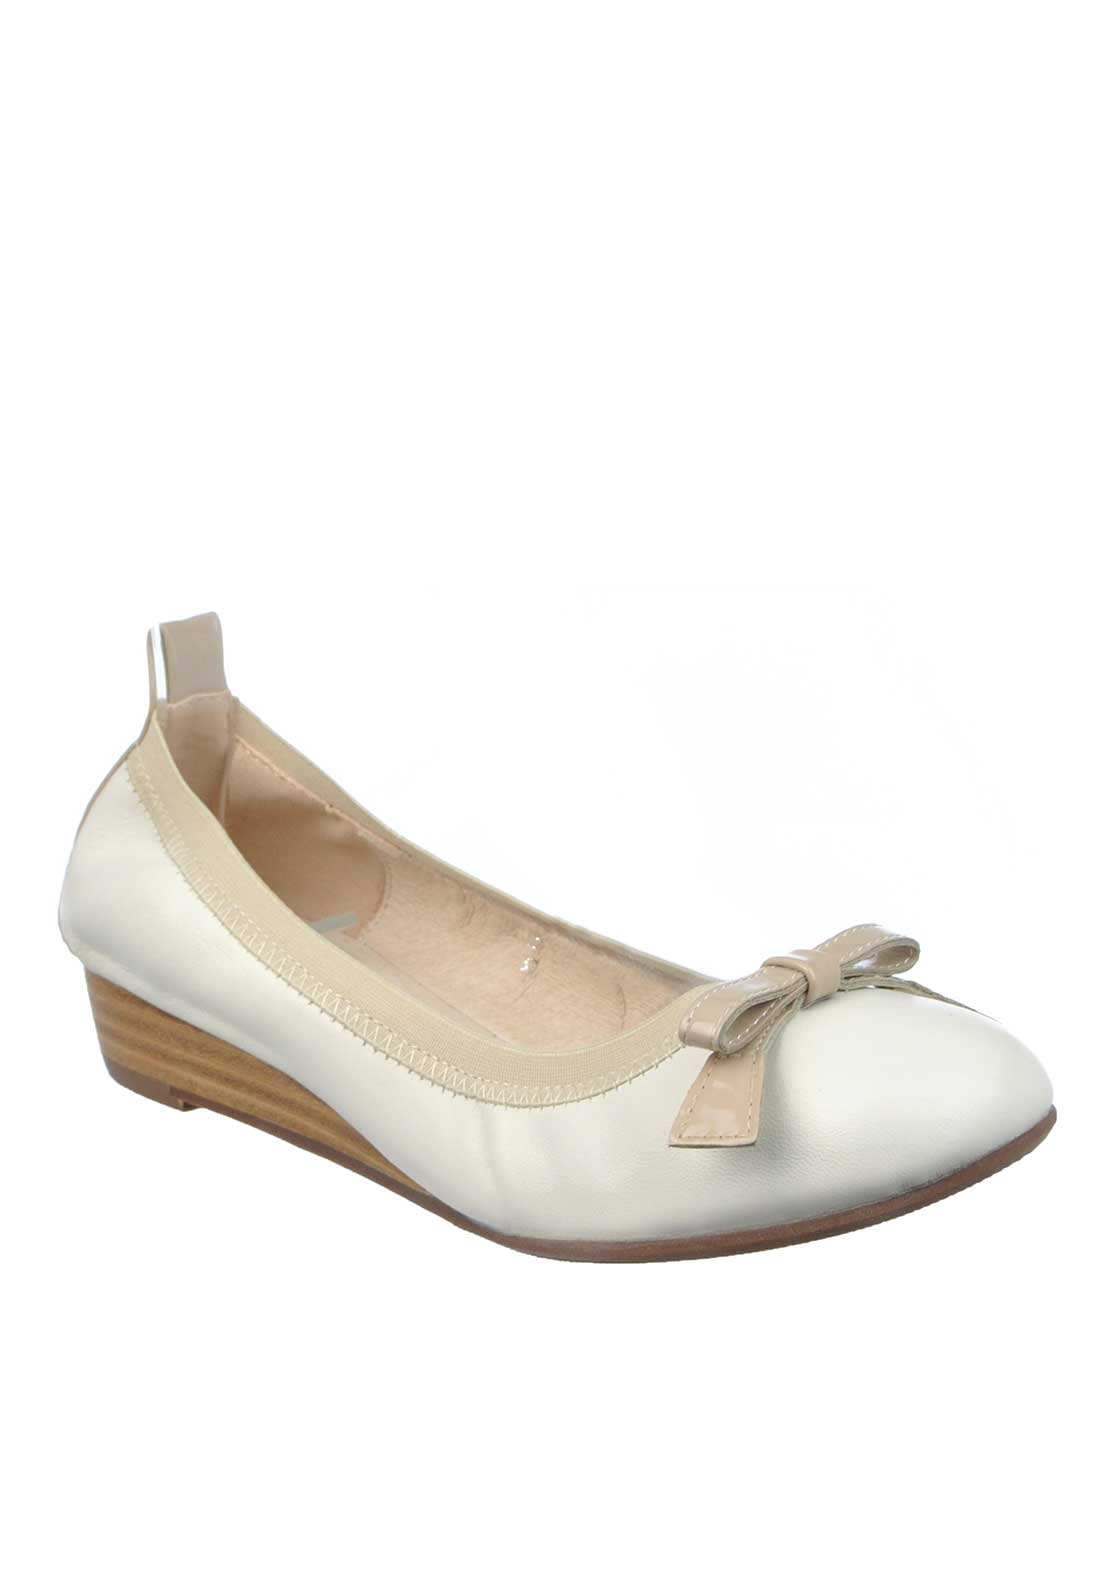 Amy Huberman Bourbon the Lady Eve Bow Wedged Pumps